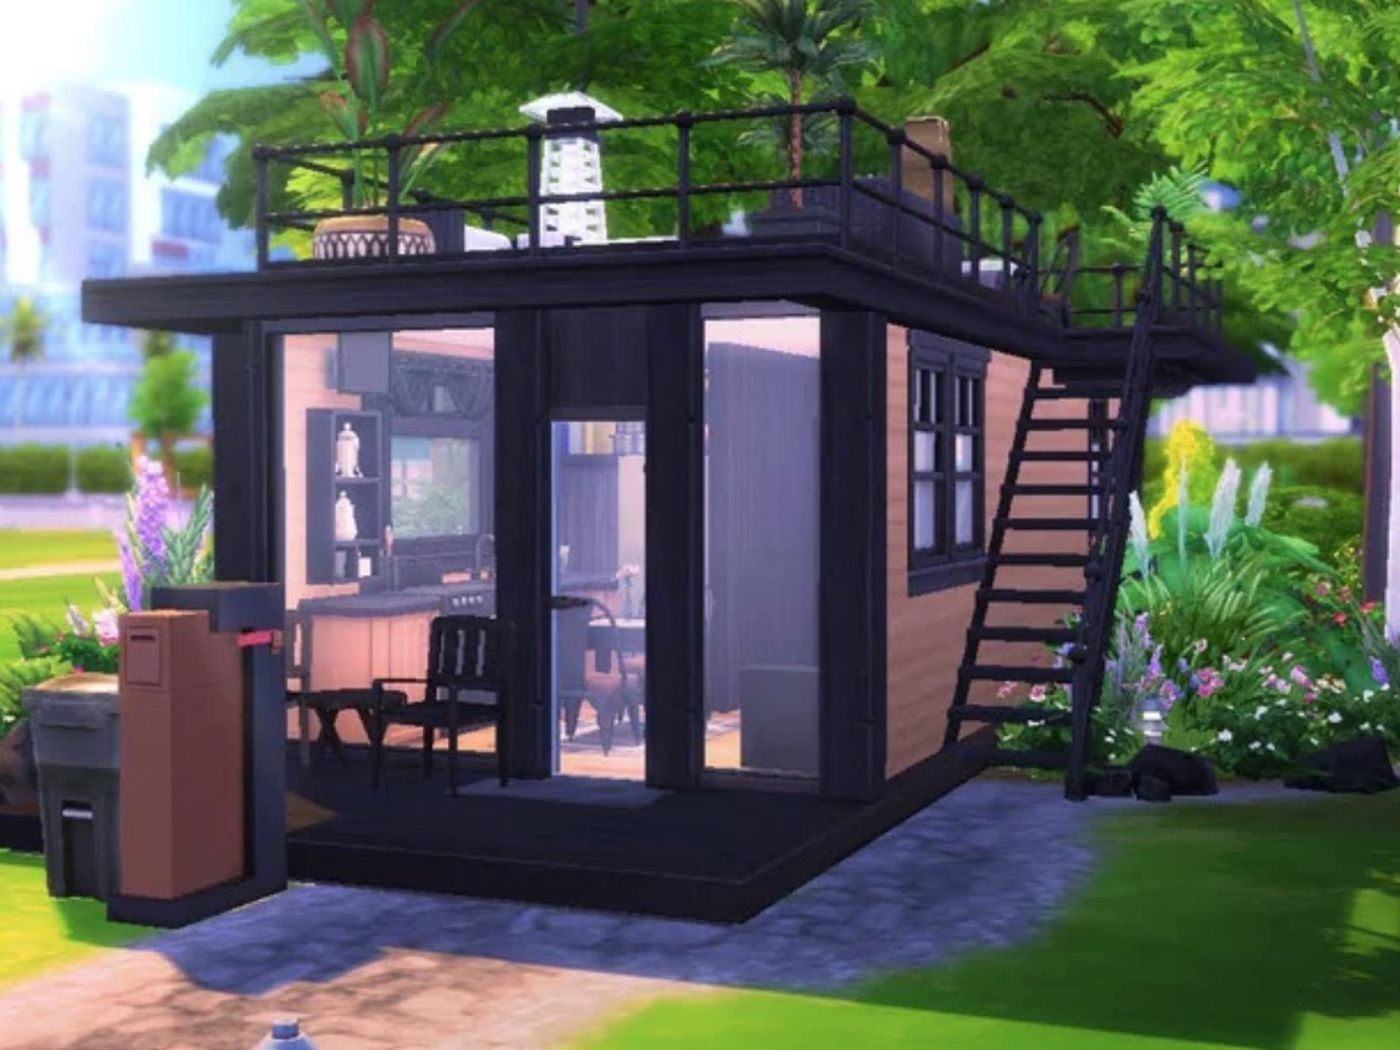 In the Sims 24, tiny houses thrive - Curbed